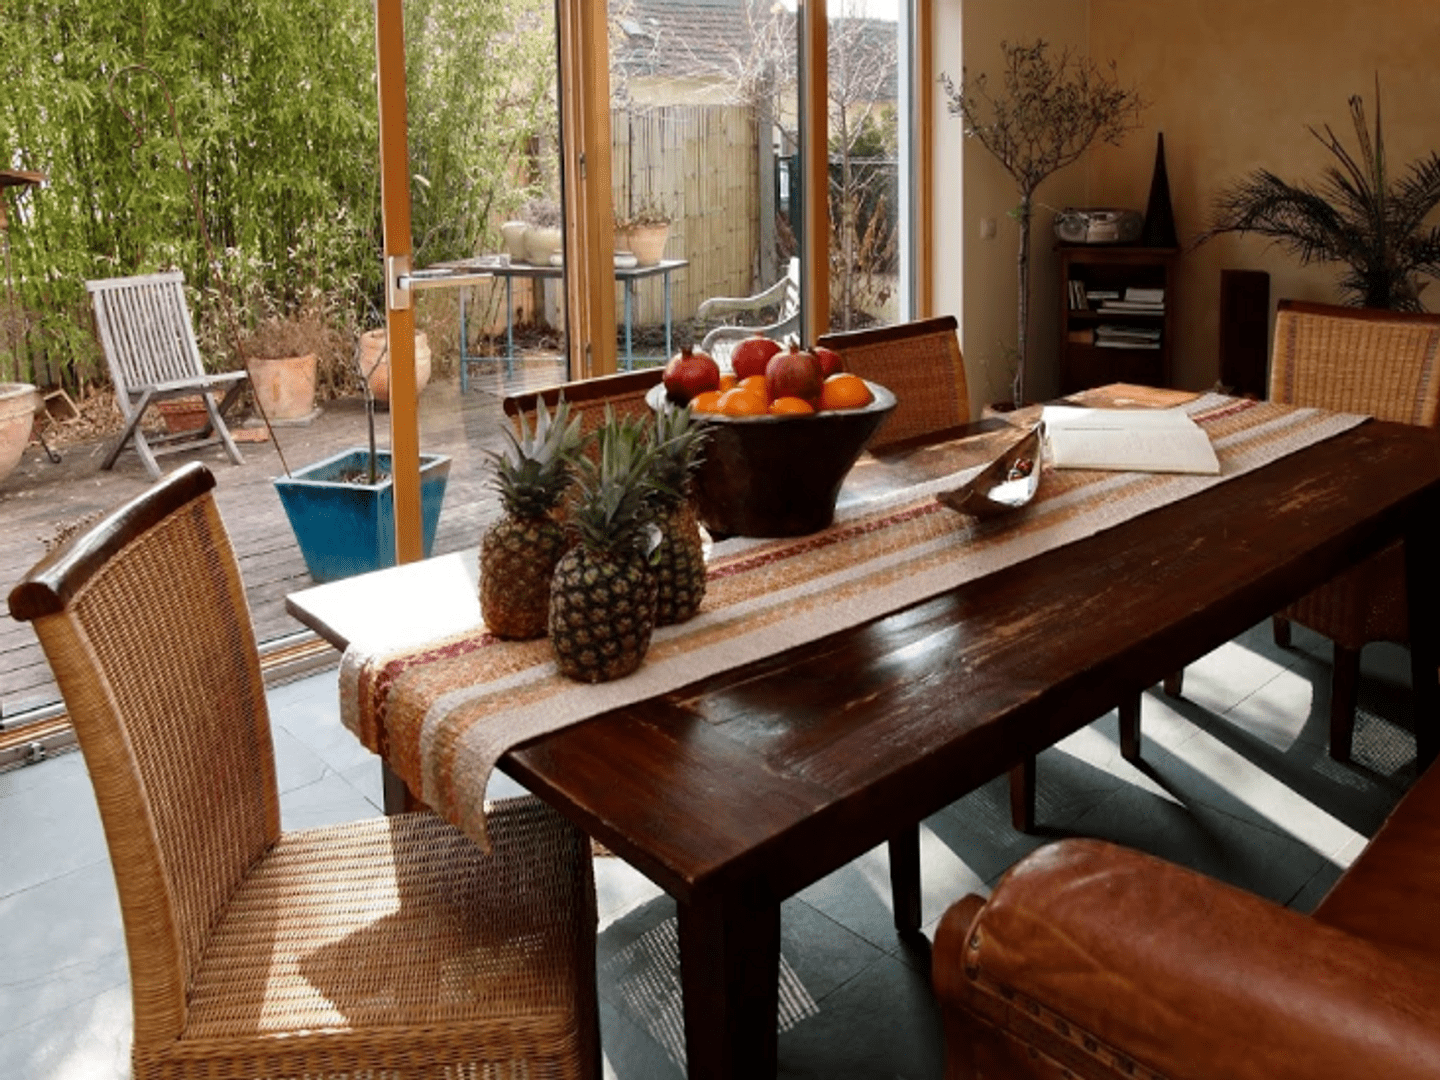 A wooden dining table at The Rooms Bed & Breakfast.